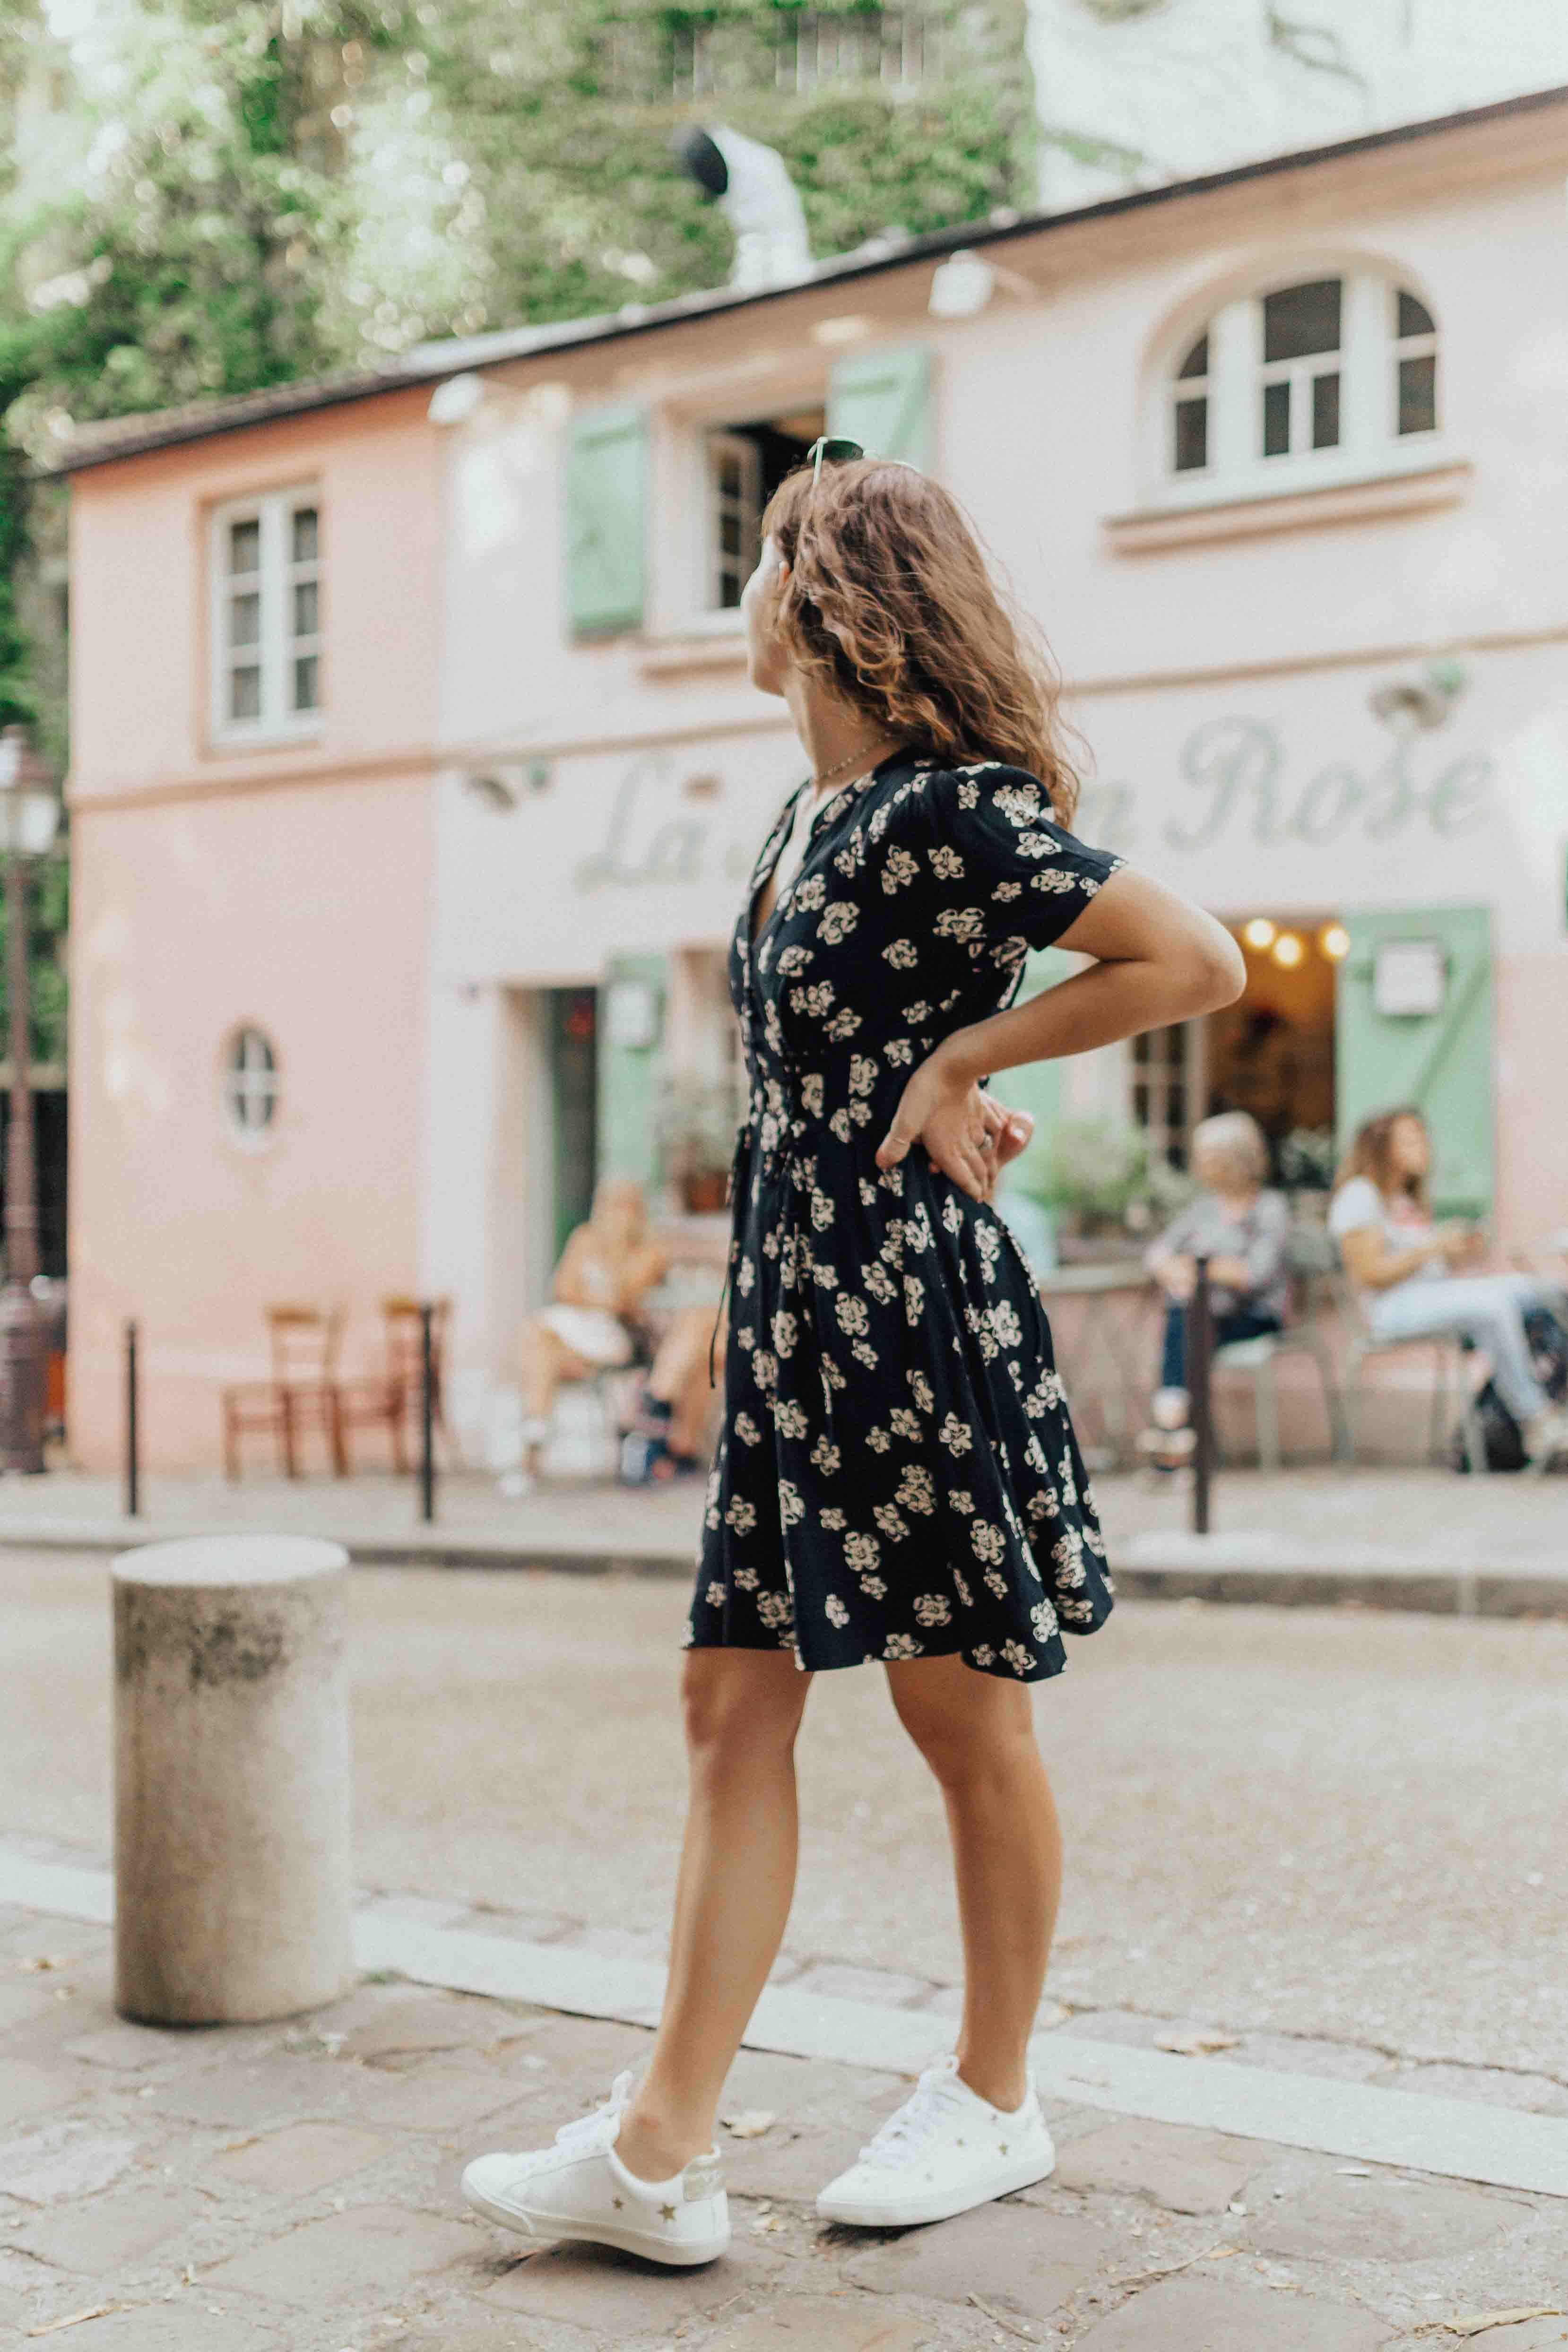 Pin By Mary Kate Robertson Marykat On The Little Duckwife Dress With Sneakers Fashion Outfits [ 4976 x 3317 Pixel ]